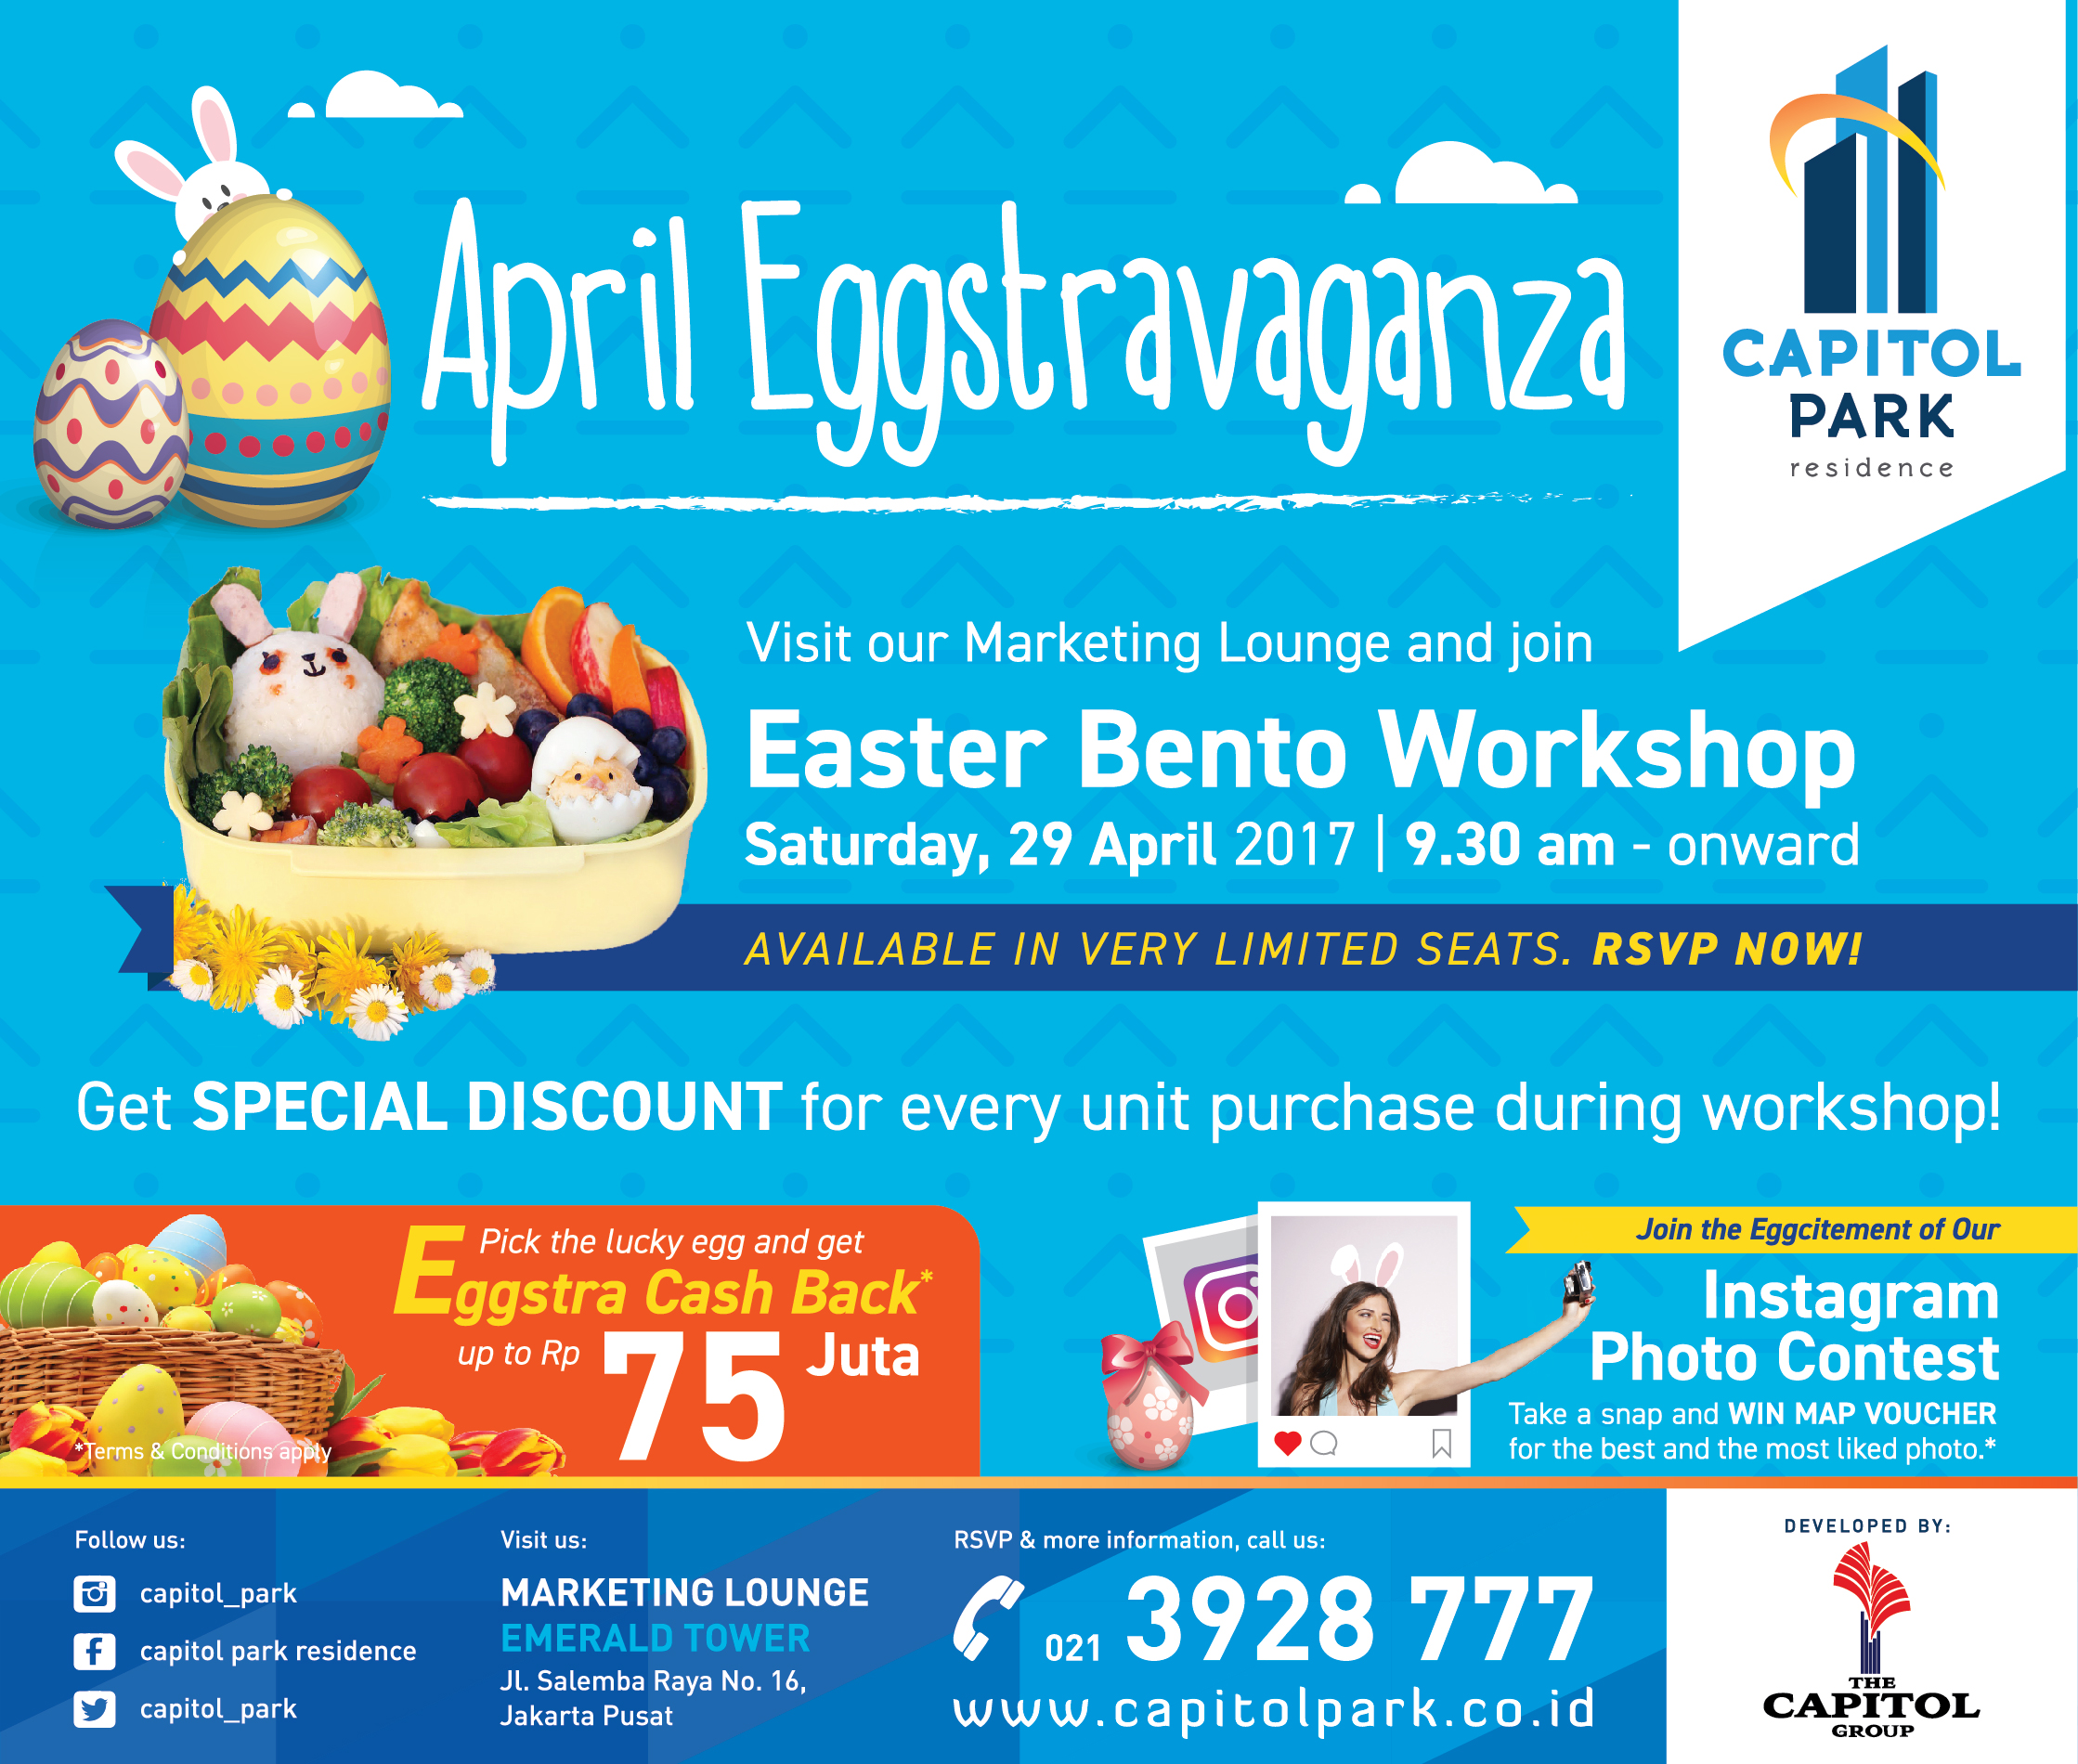 Capitol Park News - April Eggstravanga - Easter Bento Workshop